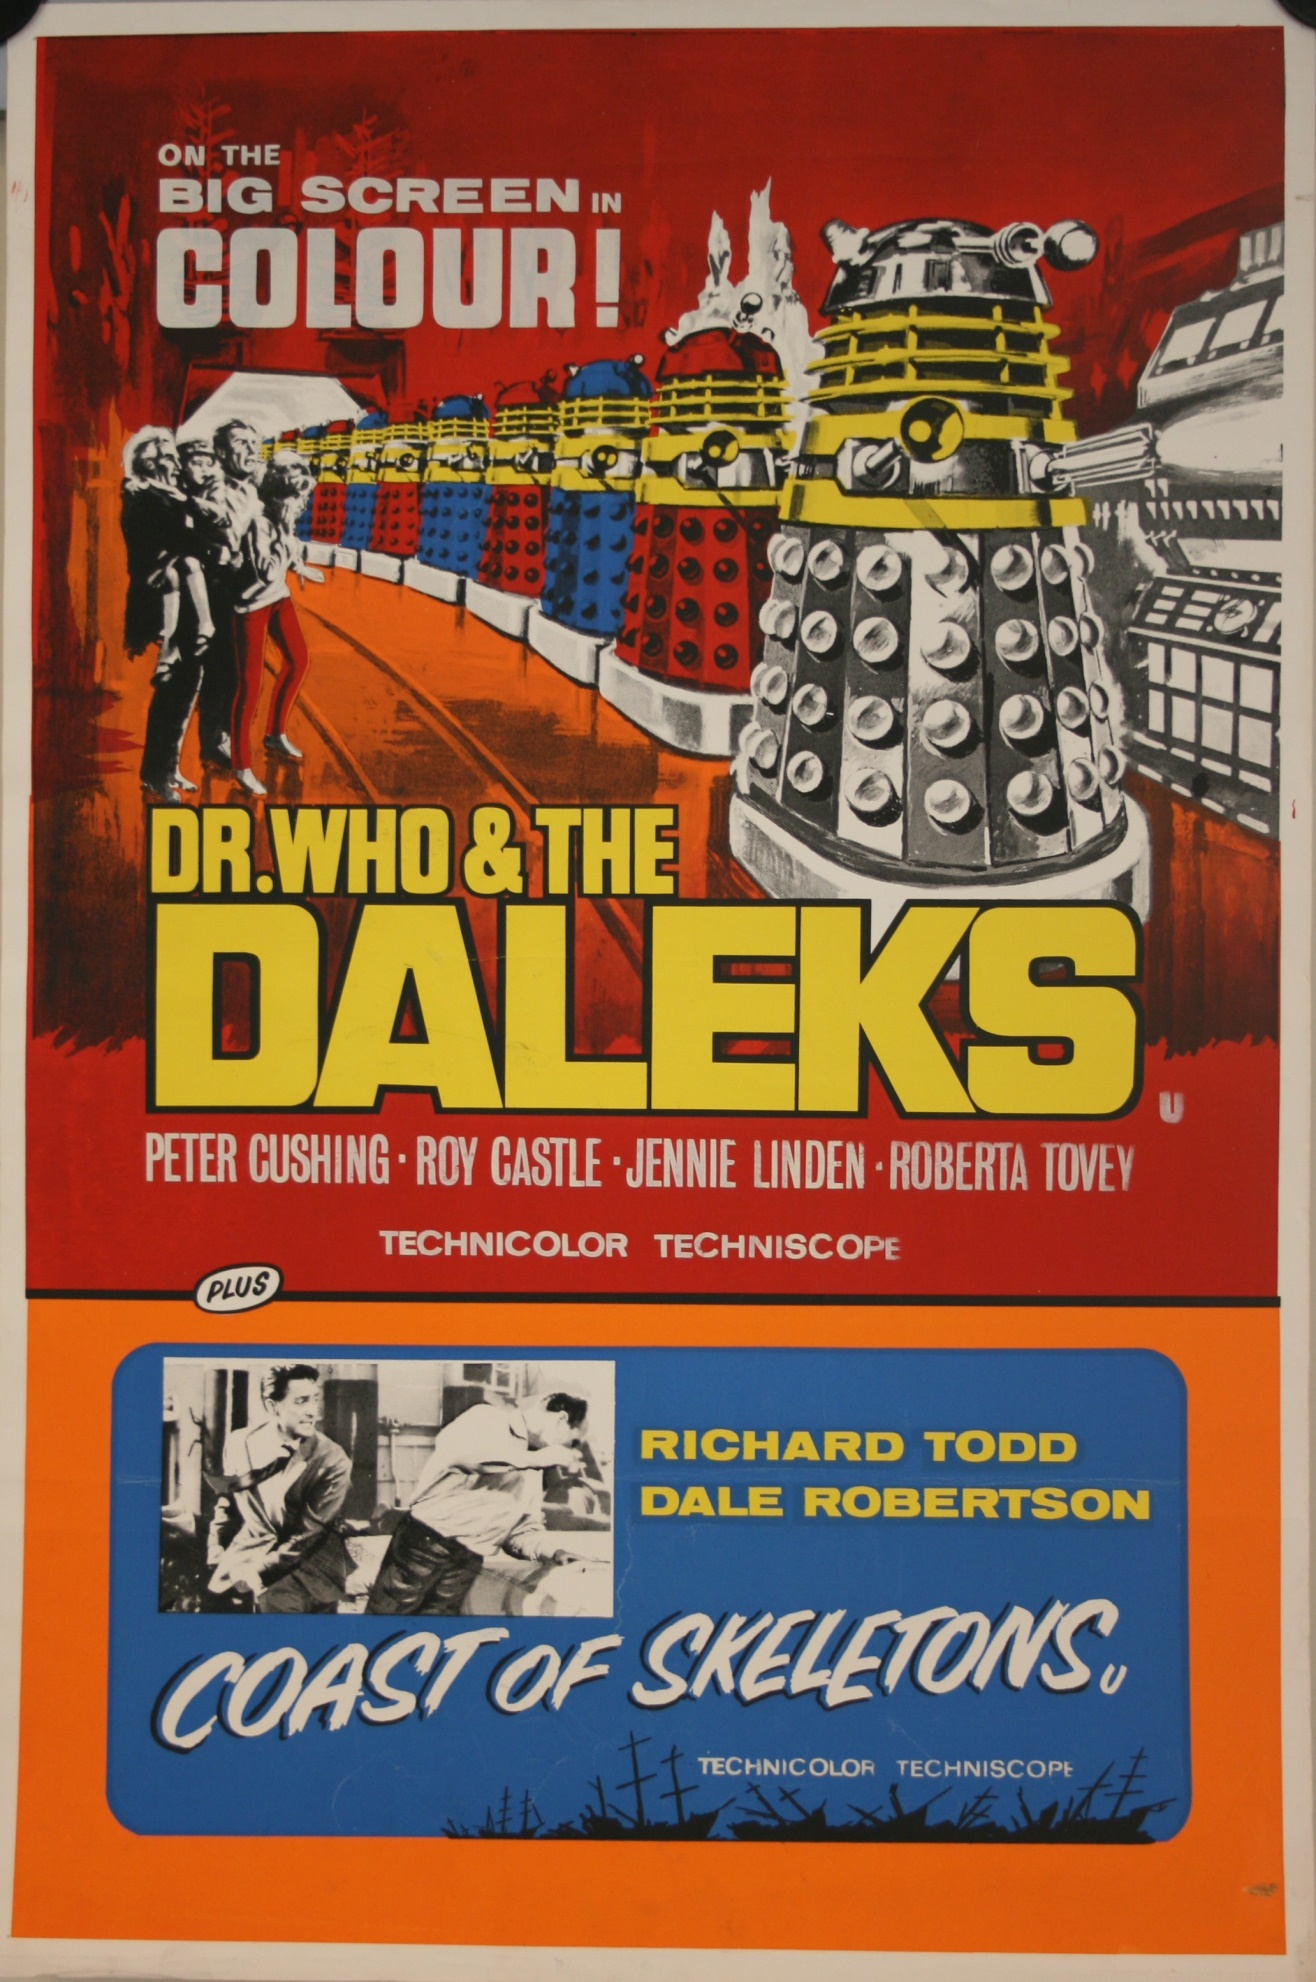 UK Double Bill One-Sheet Poster